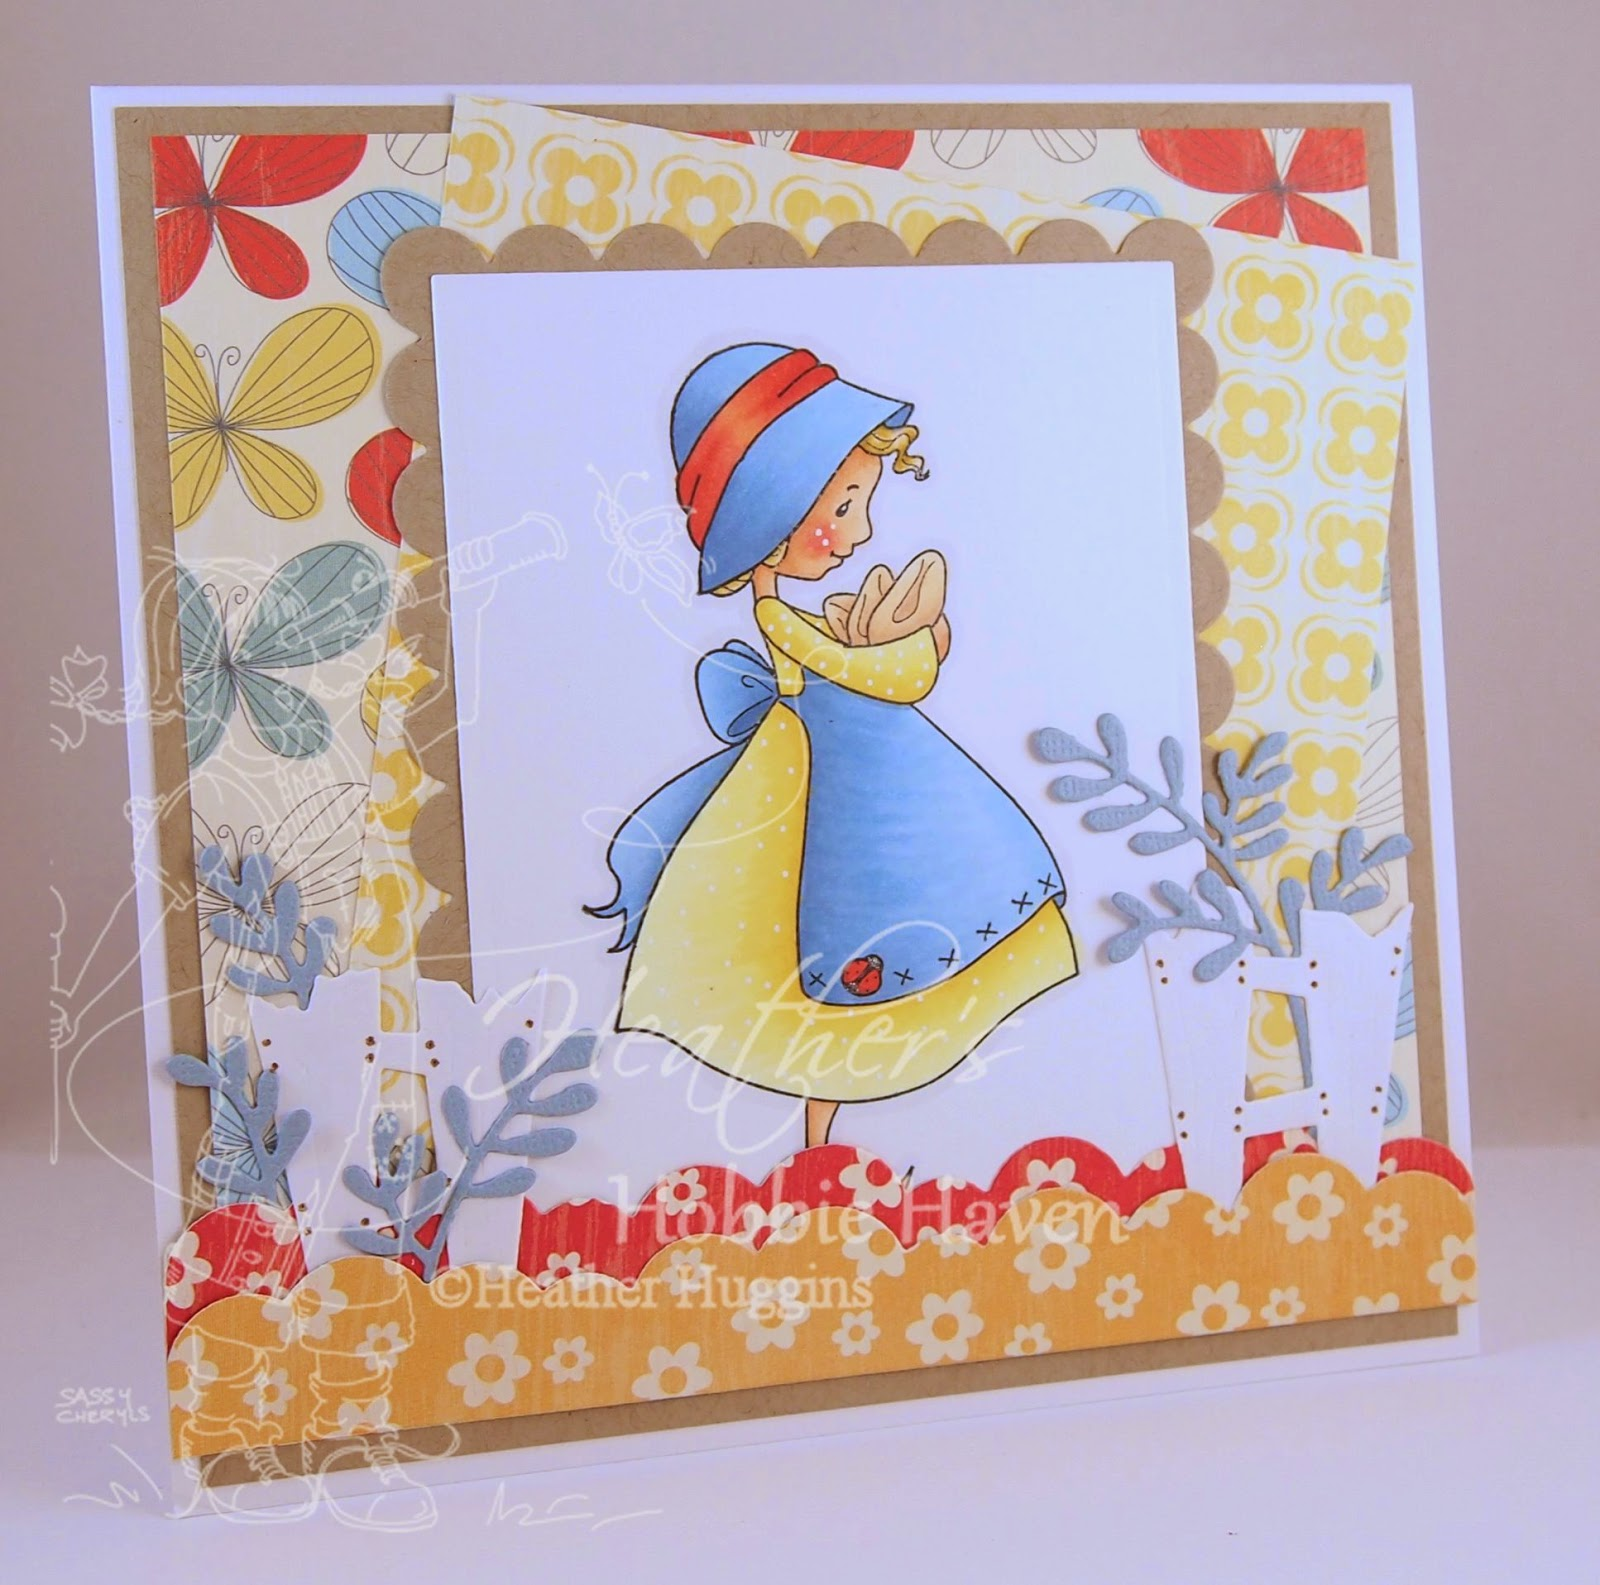 Heather's Hobbie Haven - Lucy Card Kit